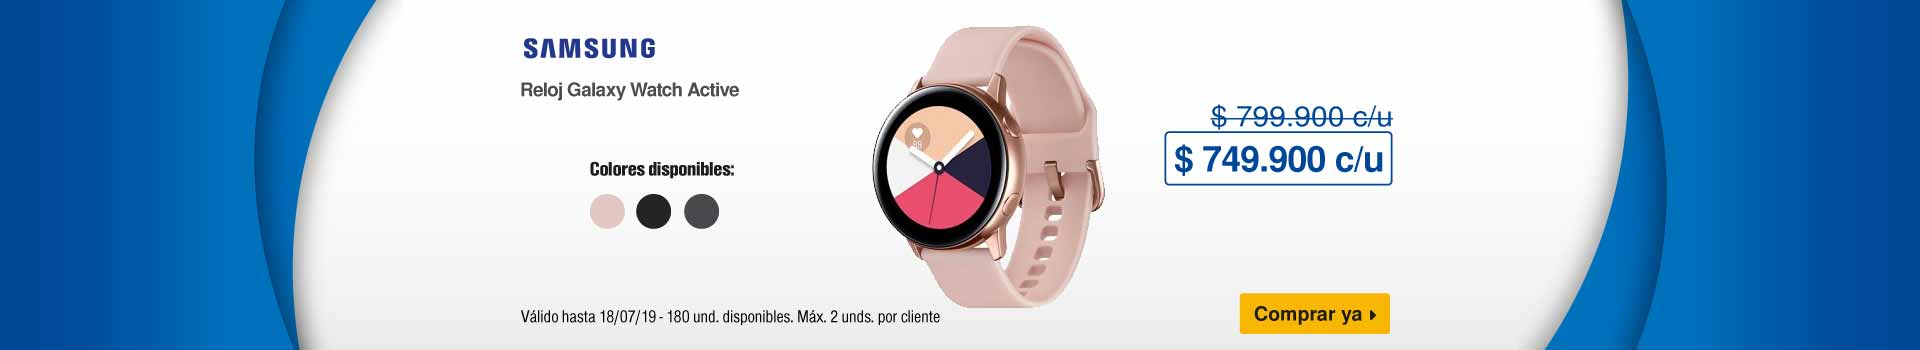 AK-KT-BCAT-1-SMARTWATCH-SAMSUNG-GALAXY_ACTIVE-JULIO 13